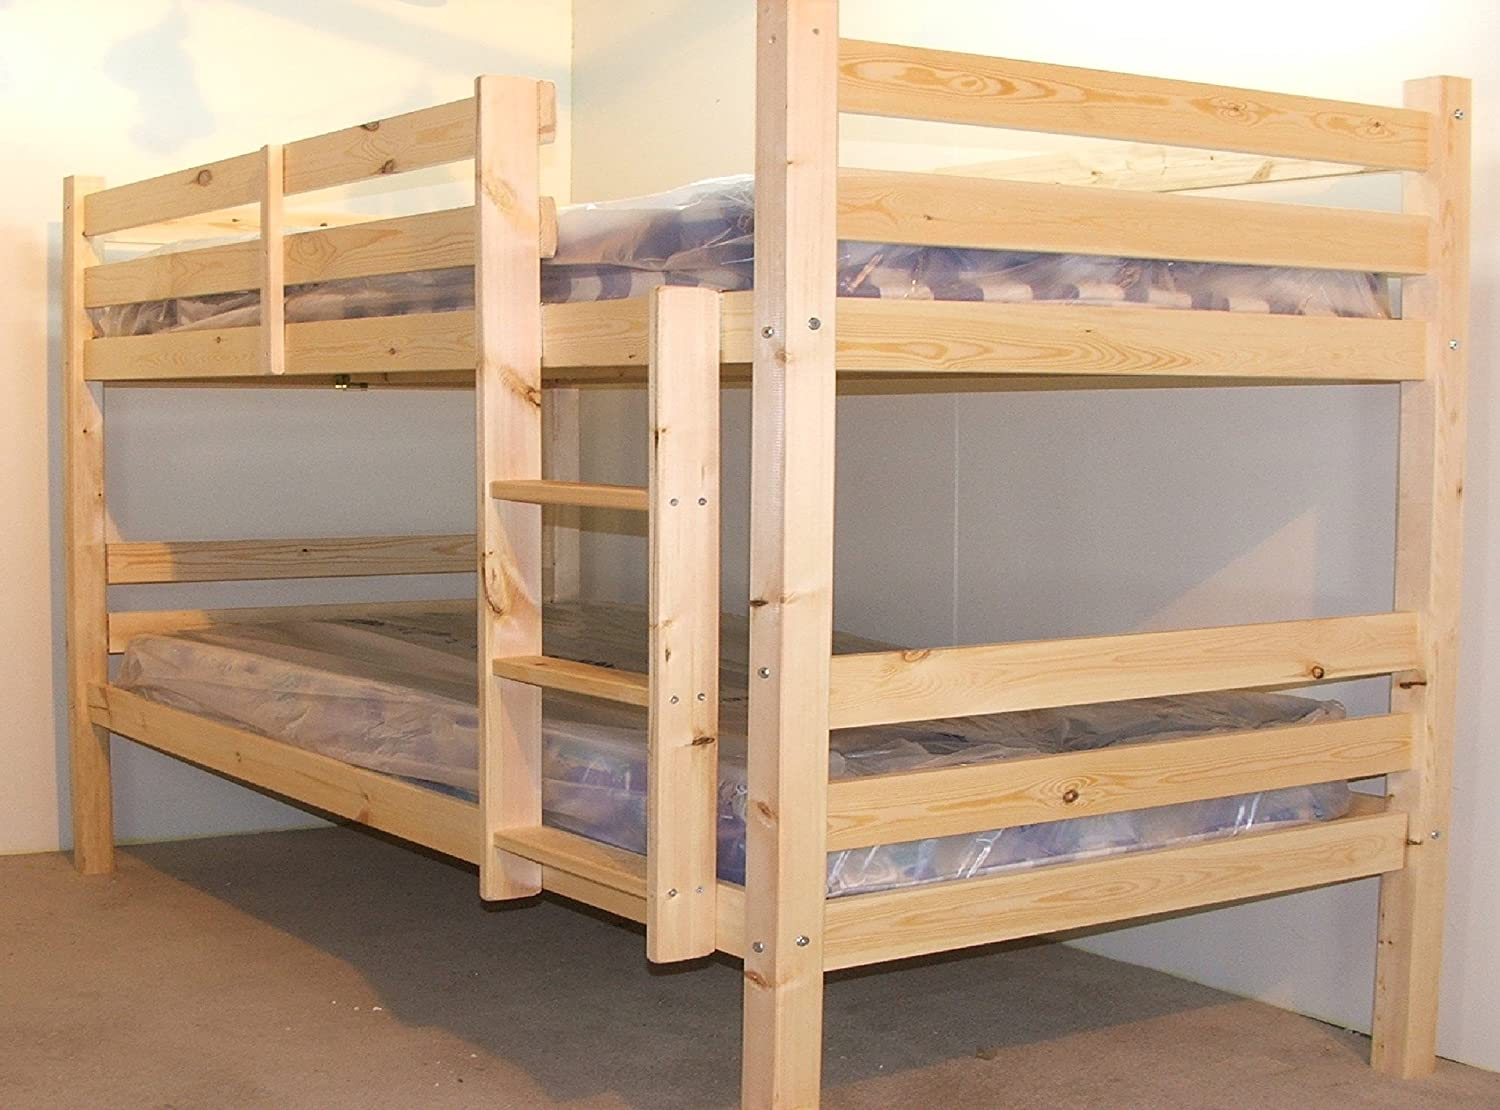 DOUBLE Bunkbed - 4ft 6 TWIN Bunk Bed - VERY STRONG BUNK! - Can be used by  adults - Includes 2x 20cm thick QUILTED sprung mattresses: Amazon.co.uk:  Kitchen & ...